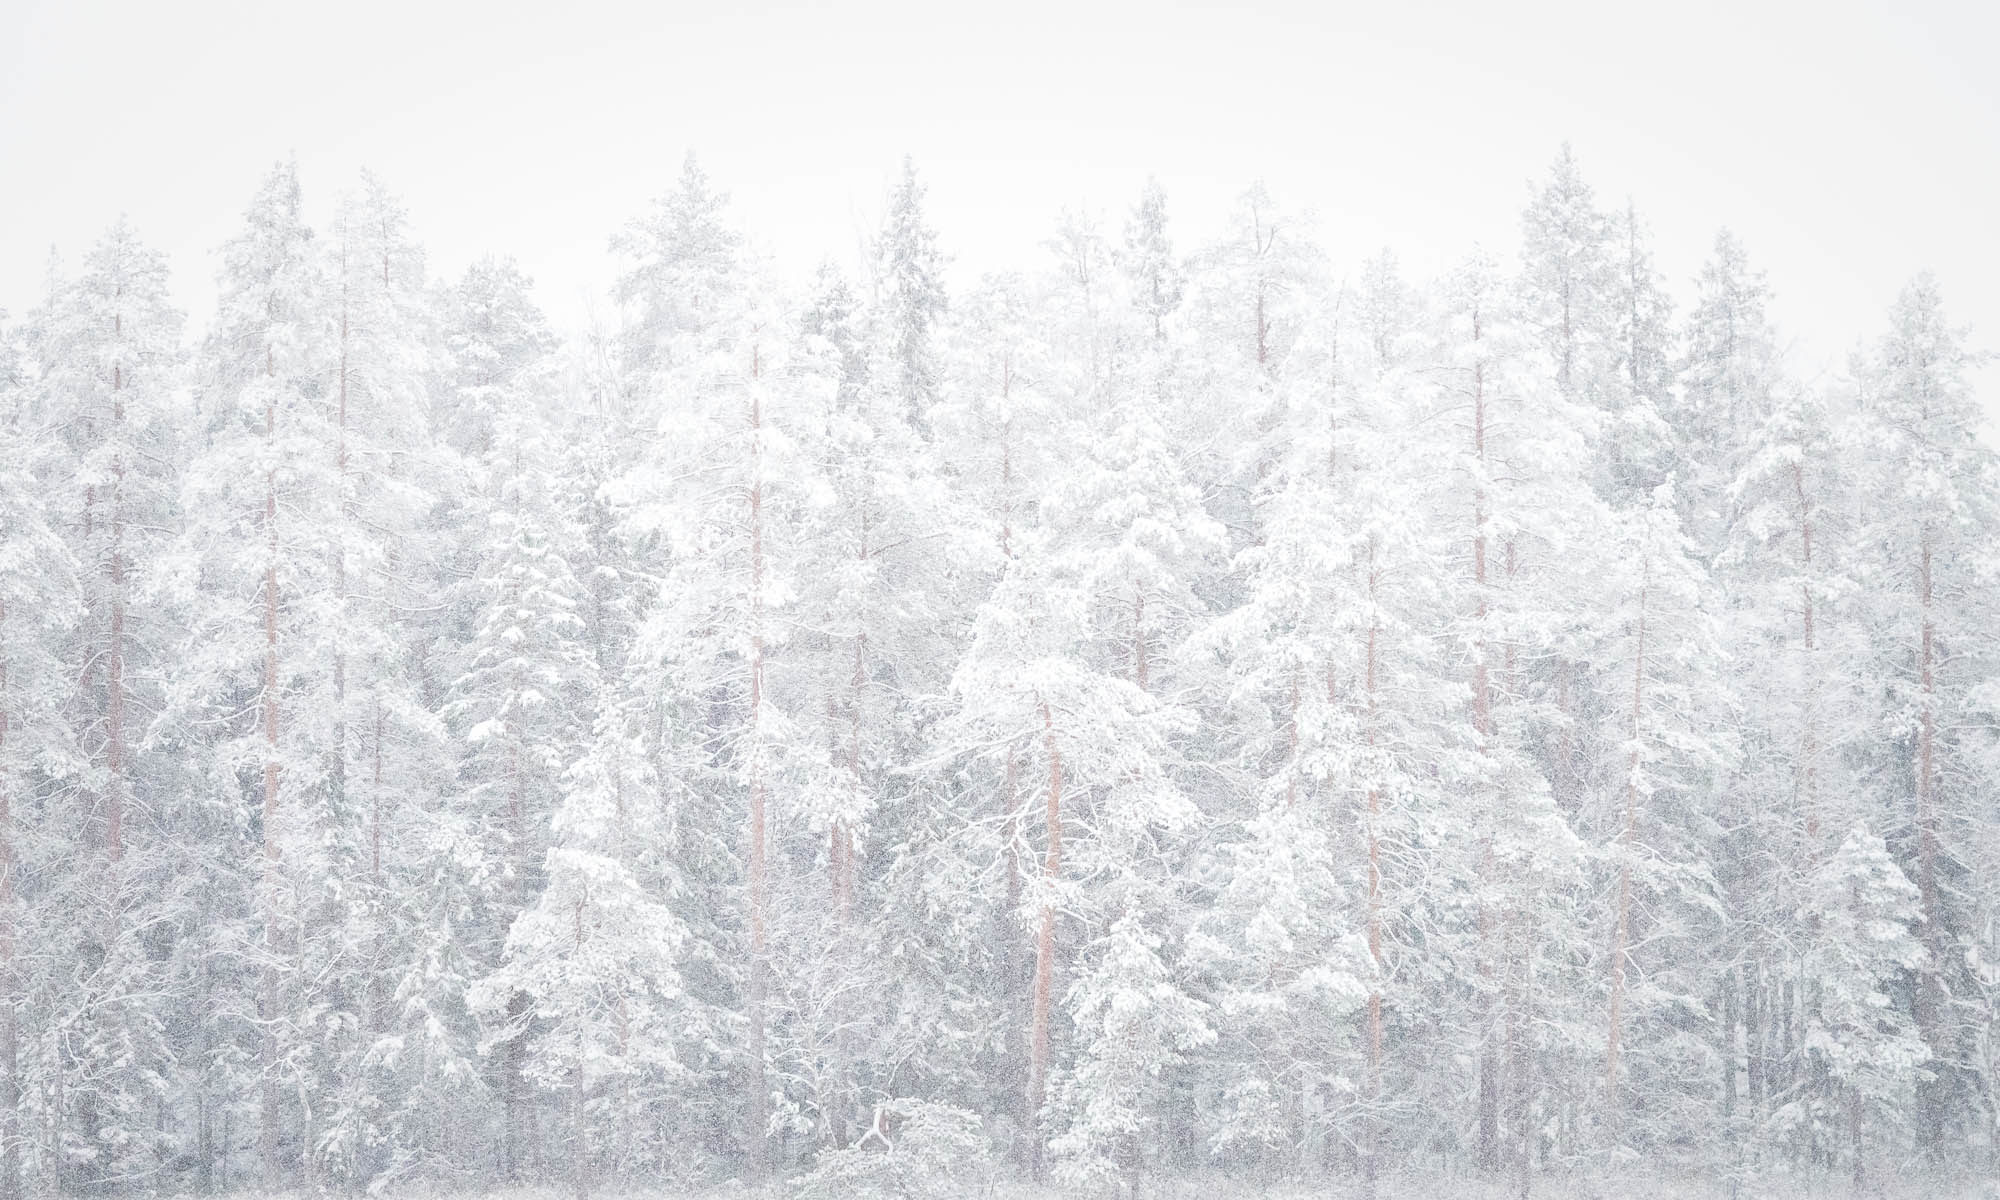 Nuuksio National Park in winter. Looks like a white Christmas in beautiful snowy Finnish forest. Nature near Helsinki, Finland.